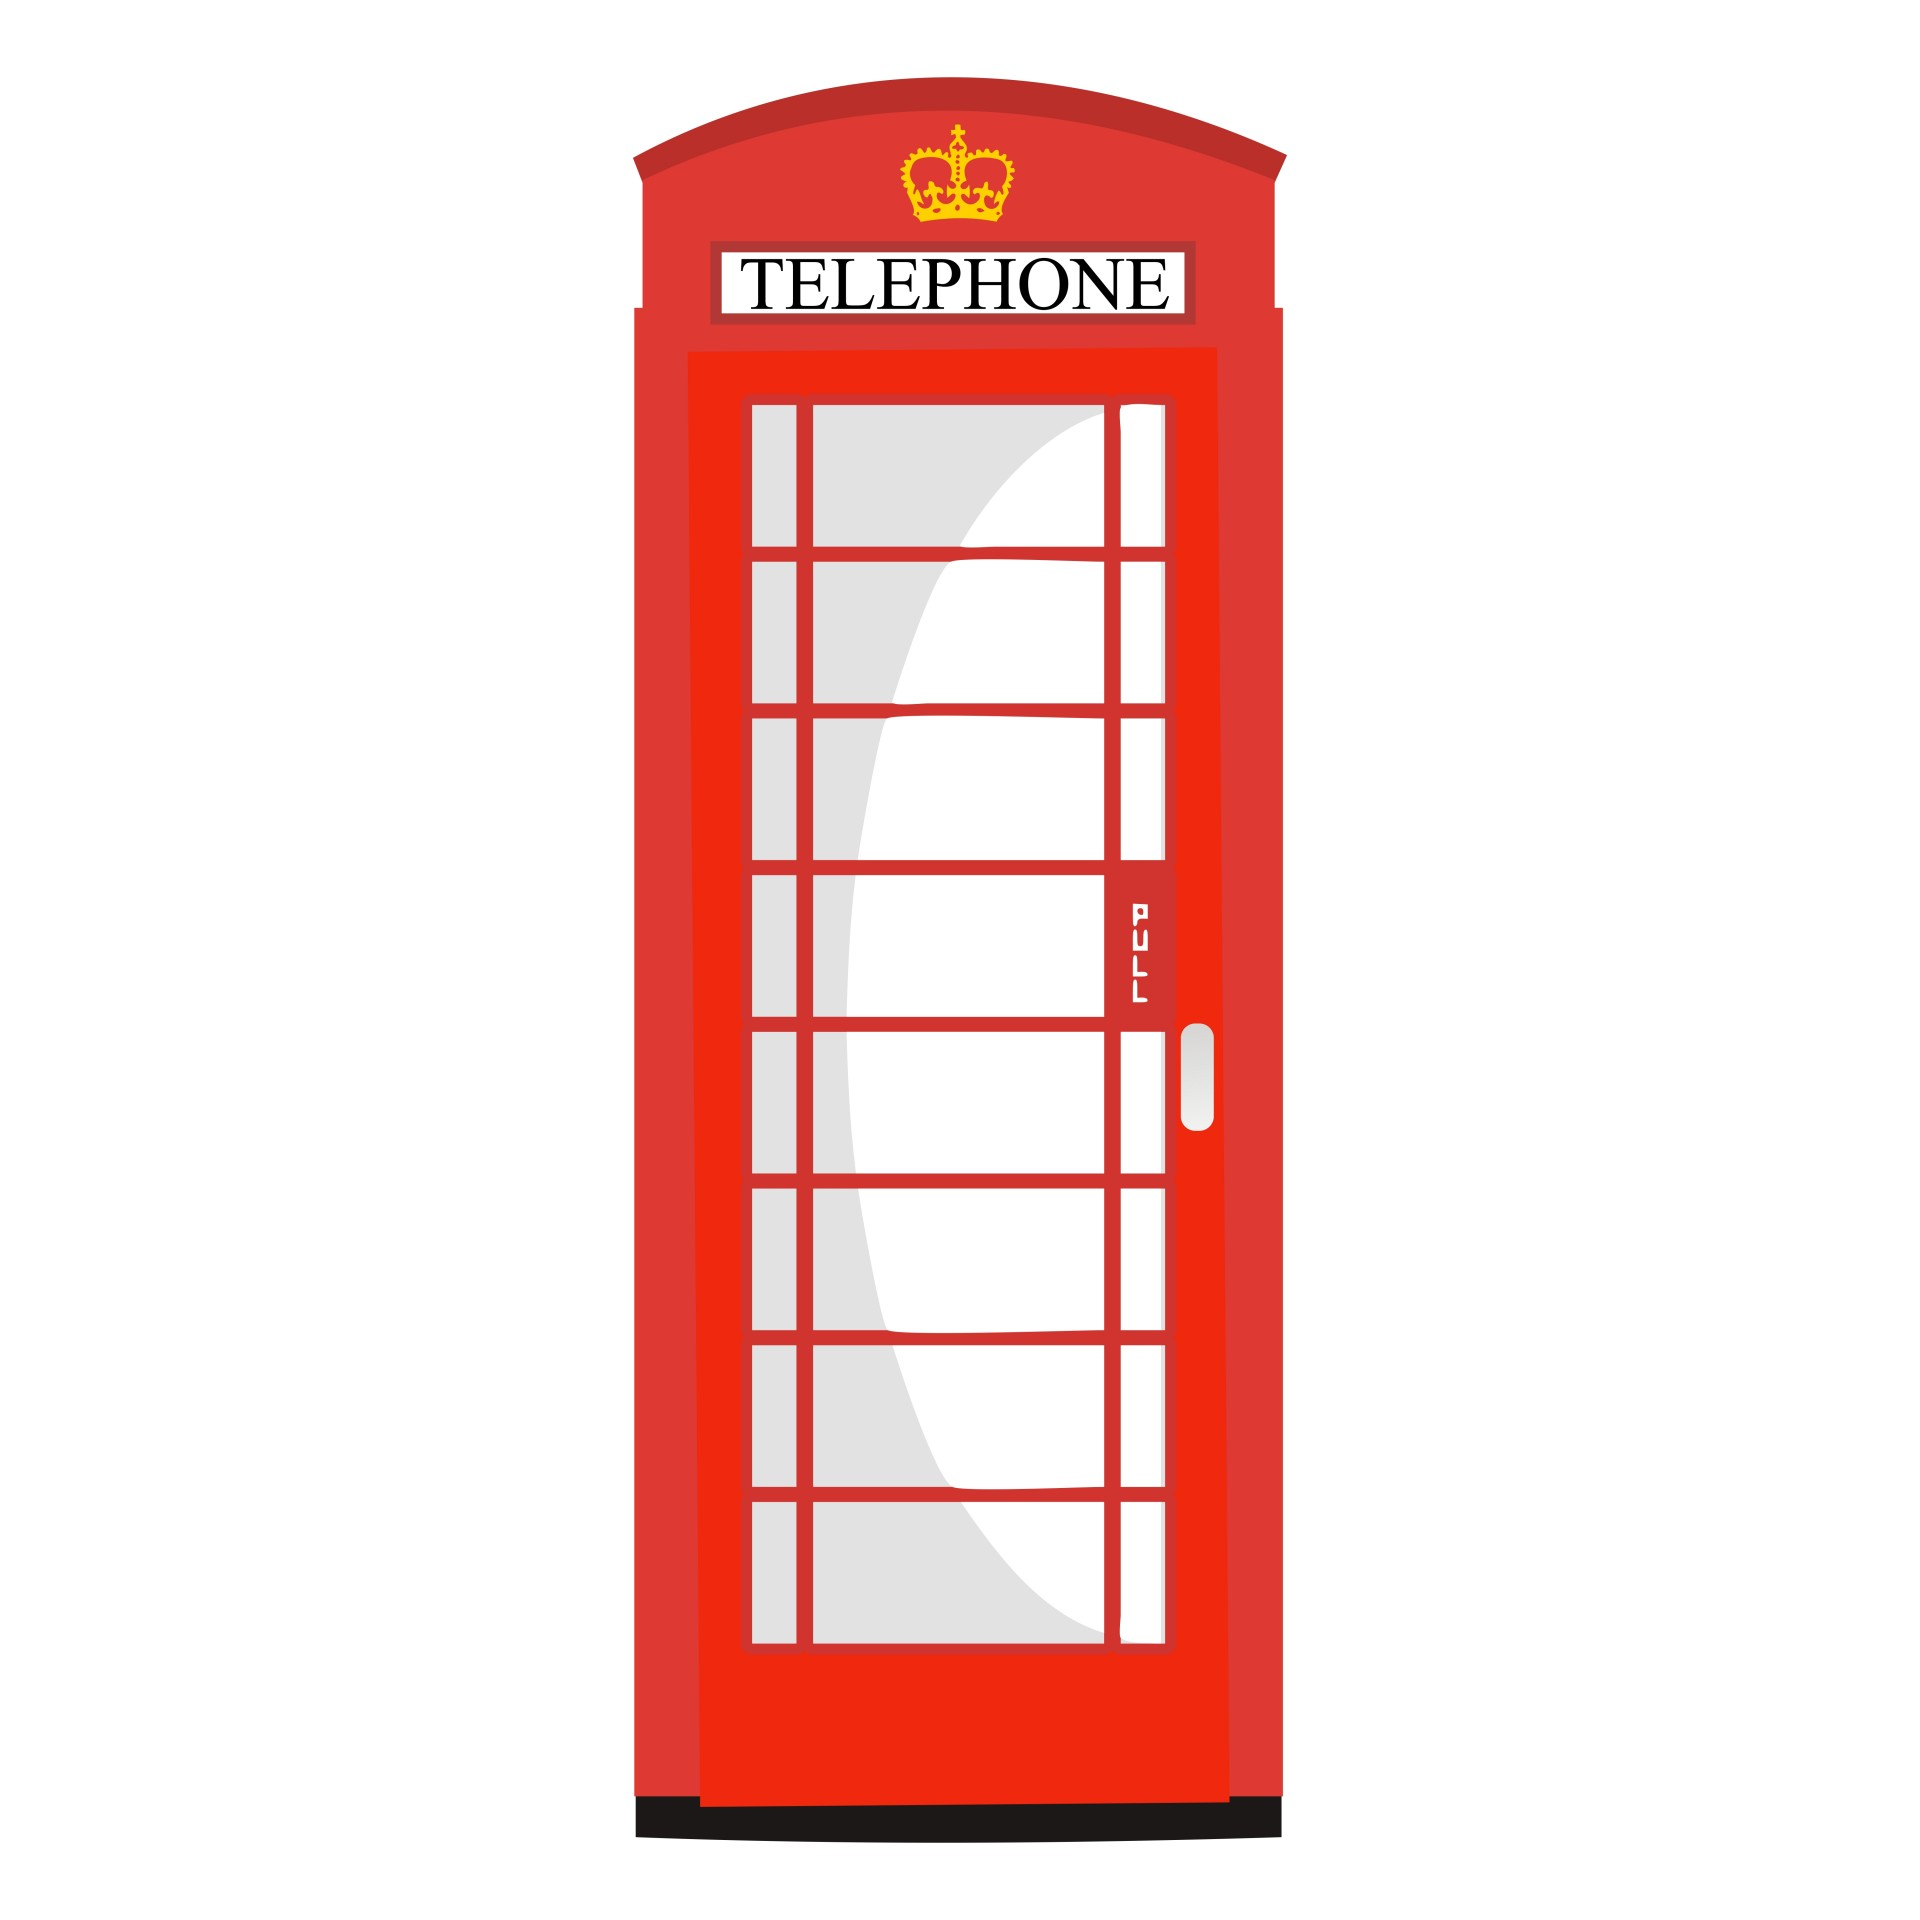 Telephone Booth clipart telephone box Red  Pictures Page Public